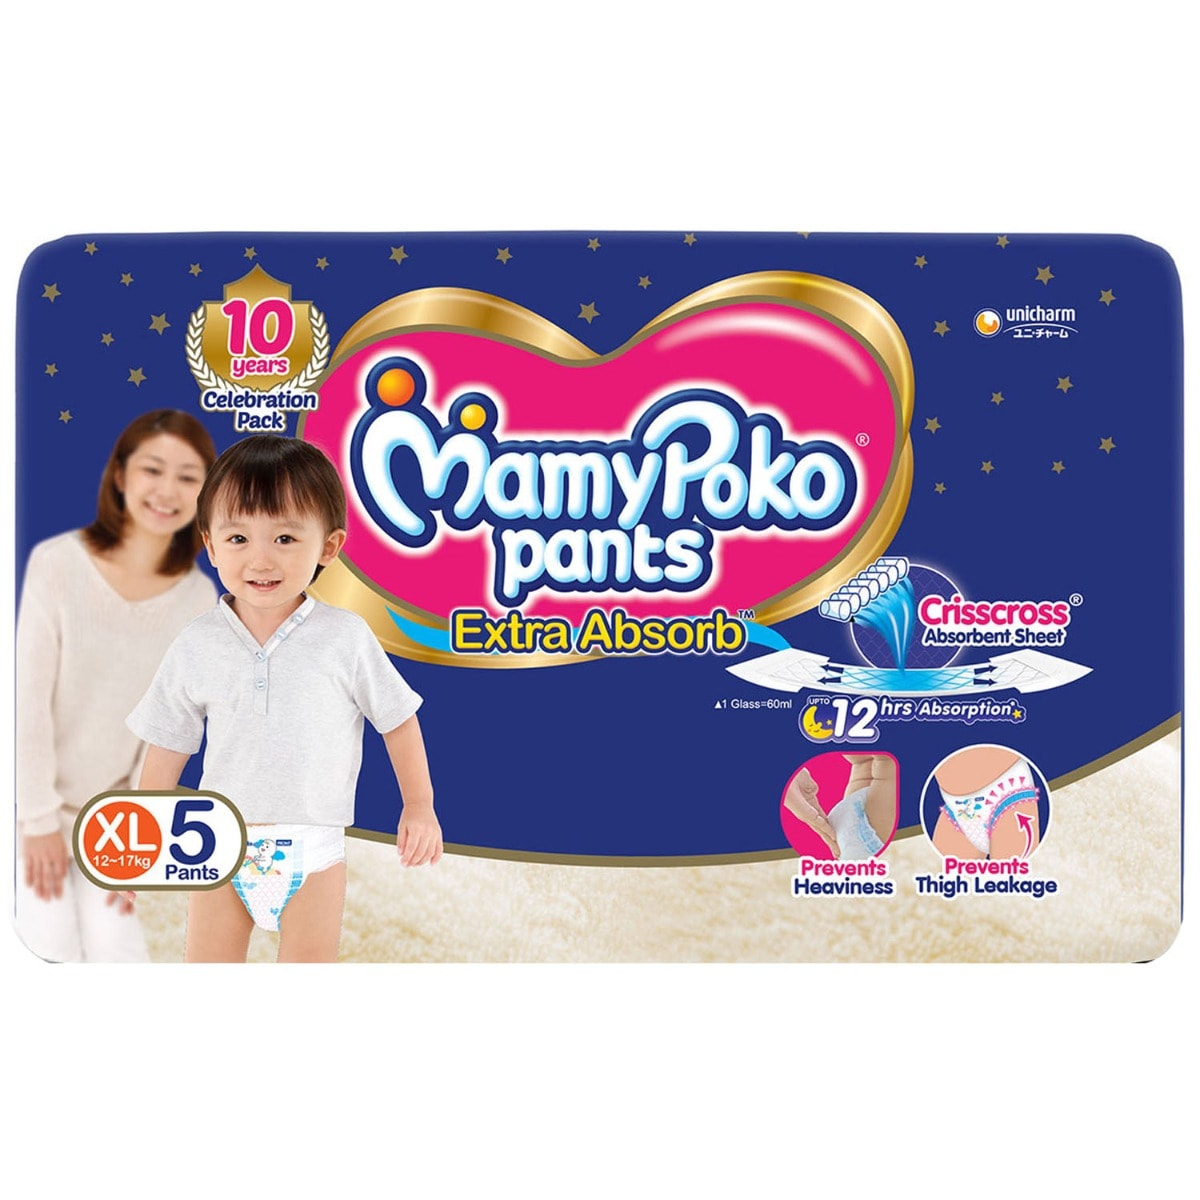 MamyPoko Extra Absorb Diaper Pants XL, 5 Count